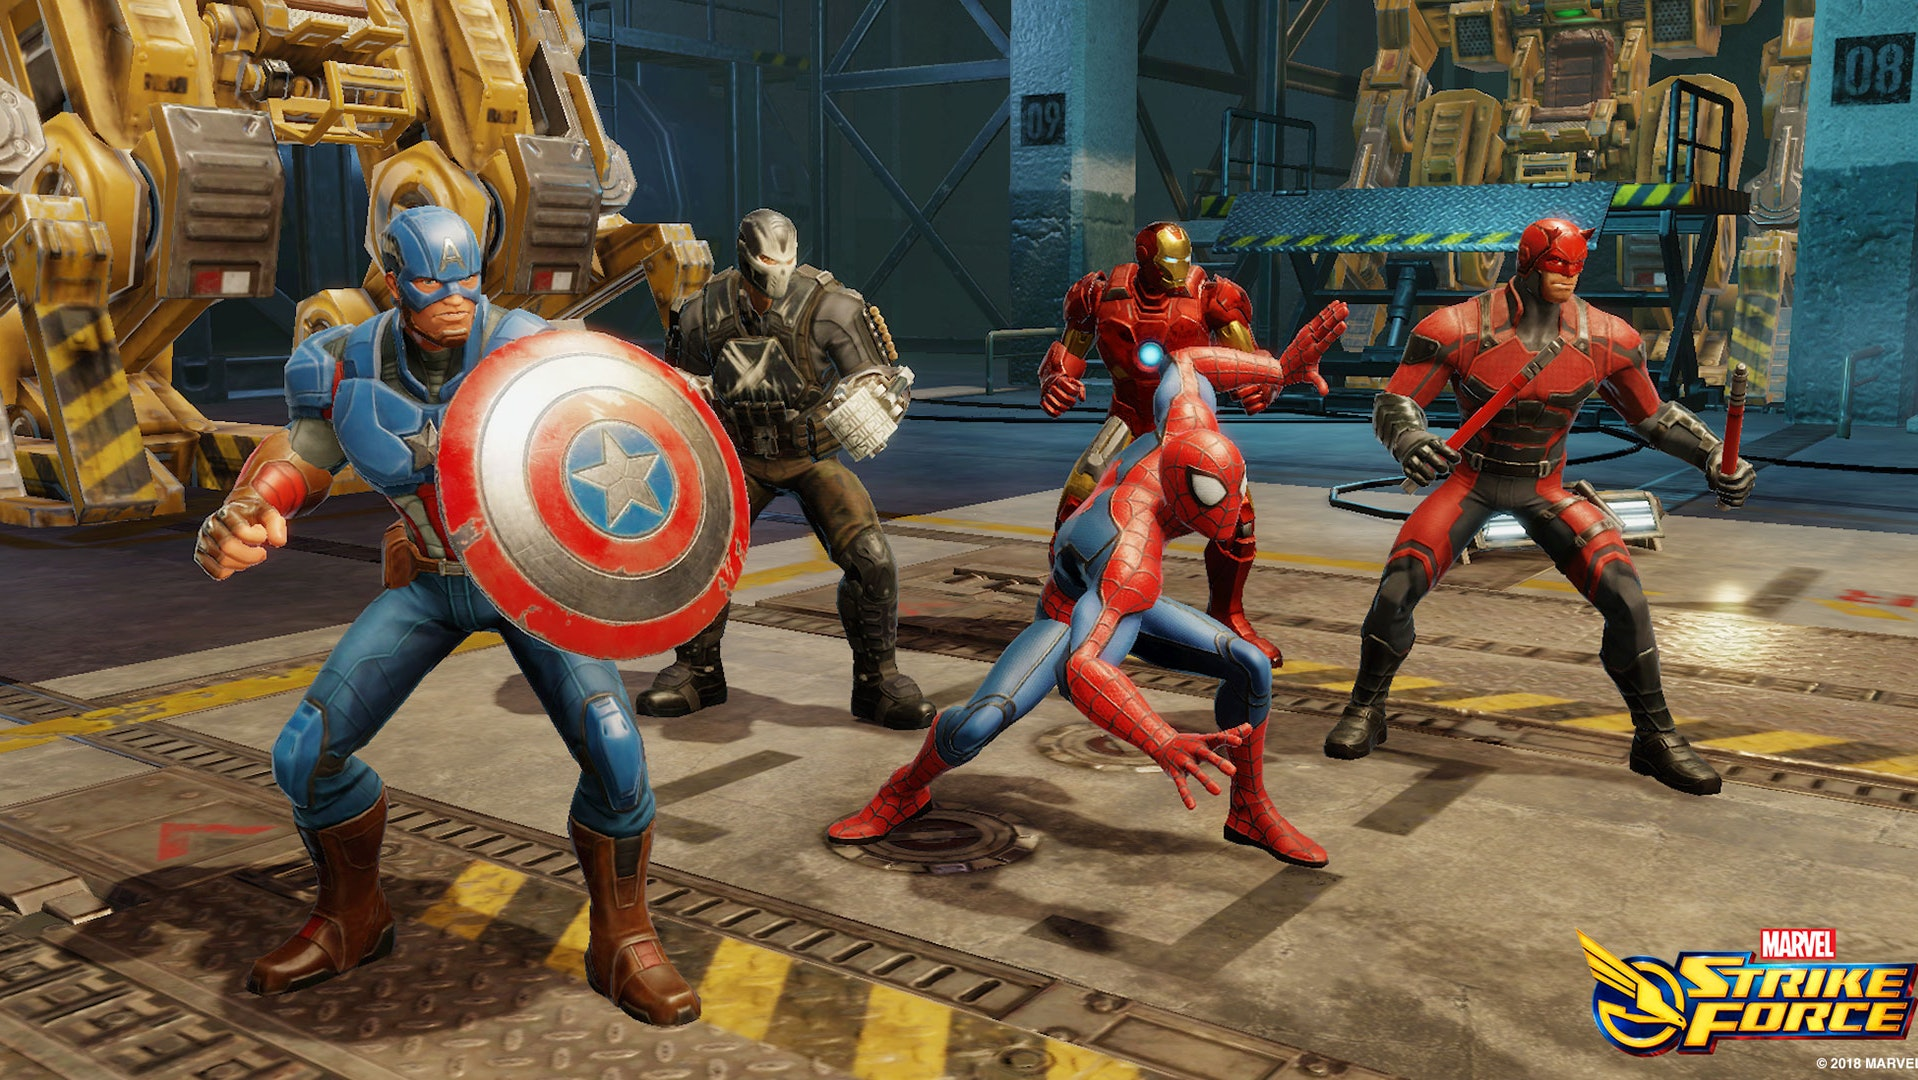 Marvel Strike Force en venta: Disney se deshace de FoxNext Games y lo compra Scopely